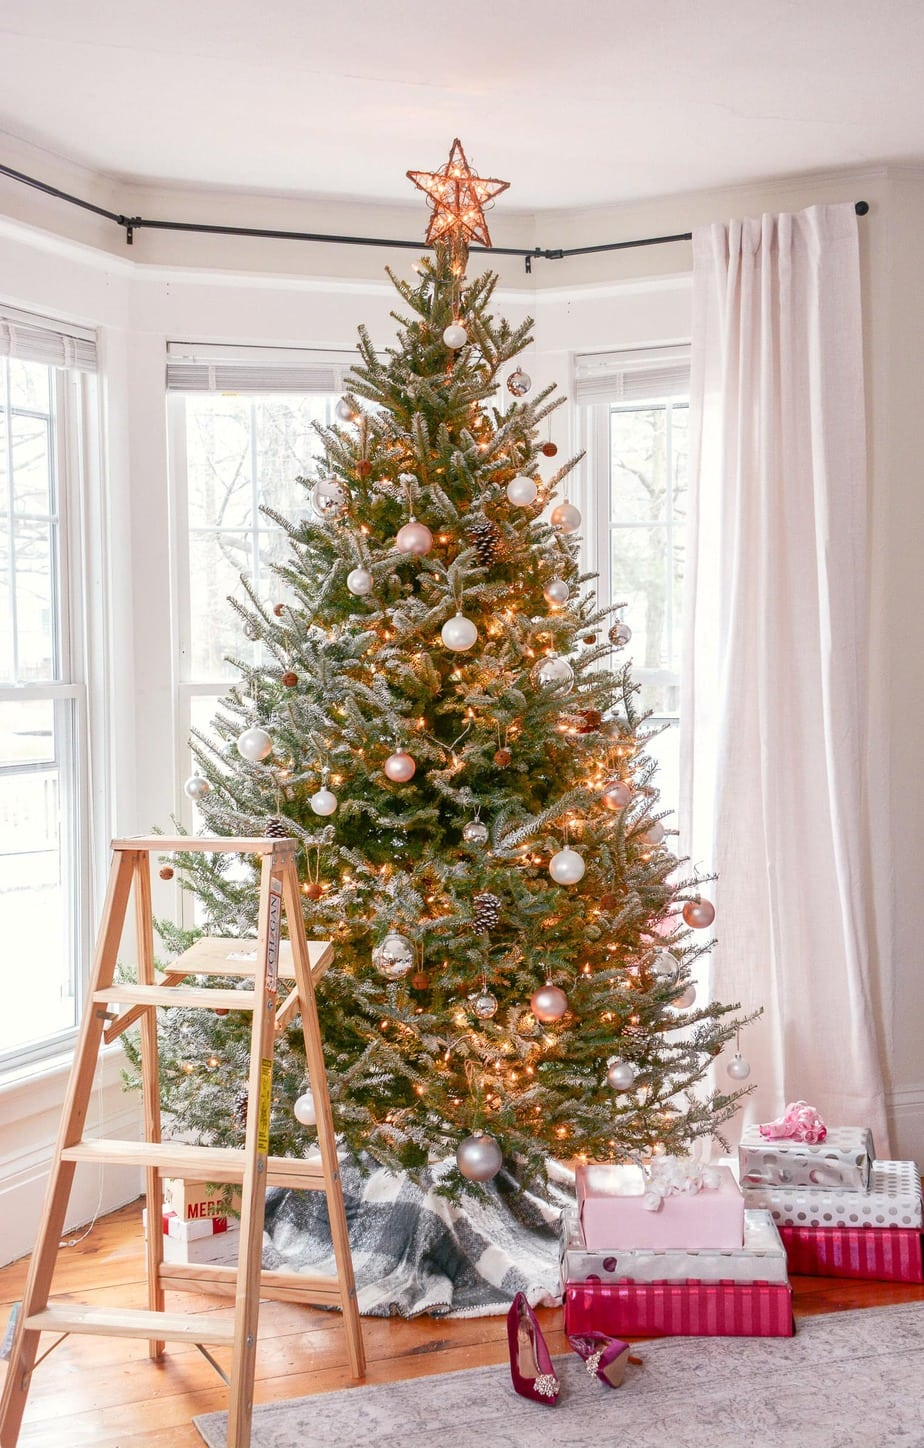 How to Flock a Real Christmas Tree in 15 Minutes